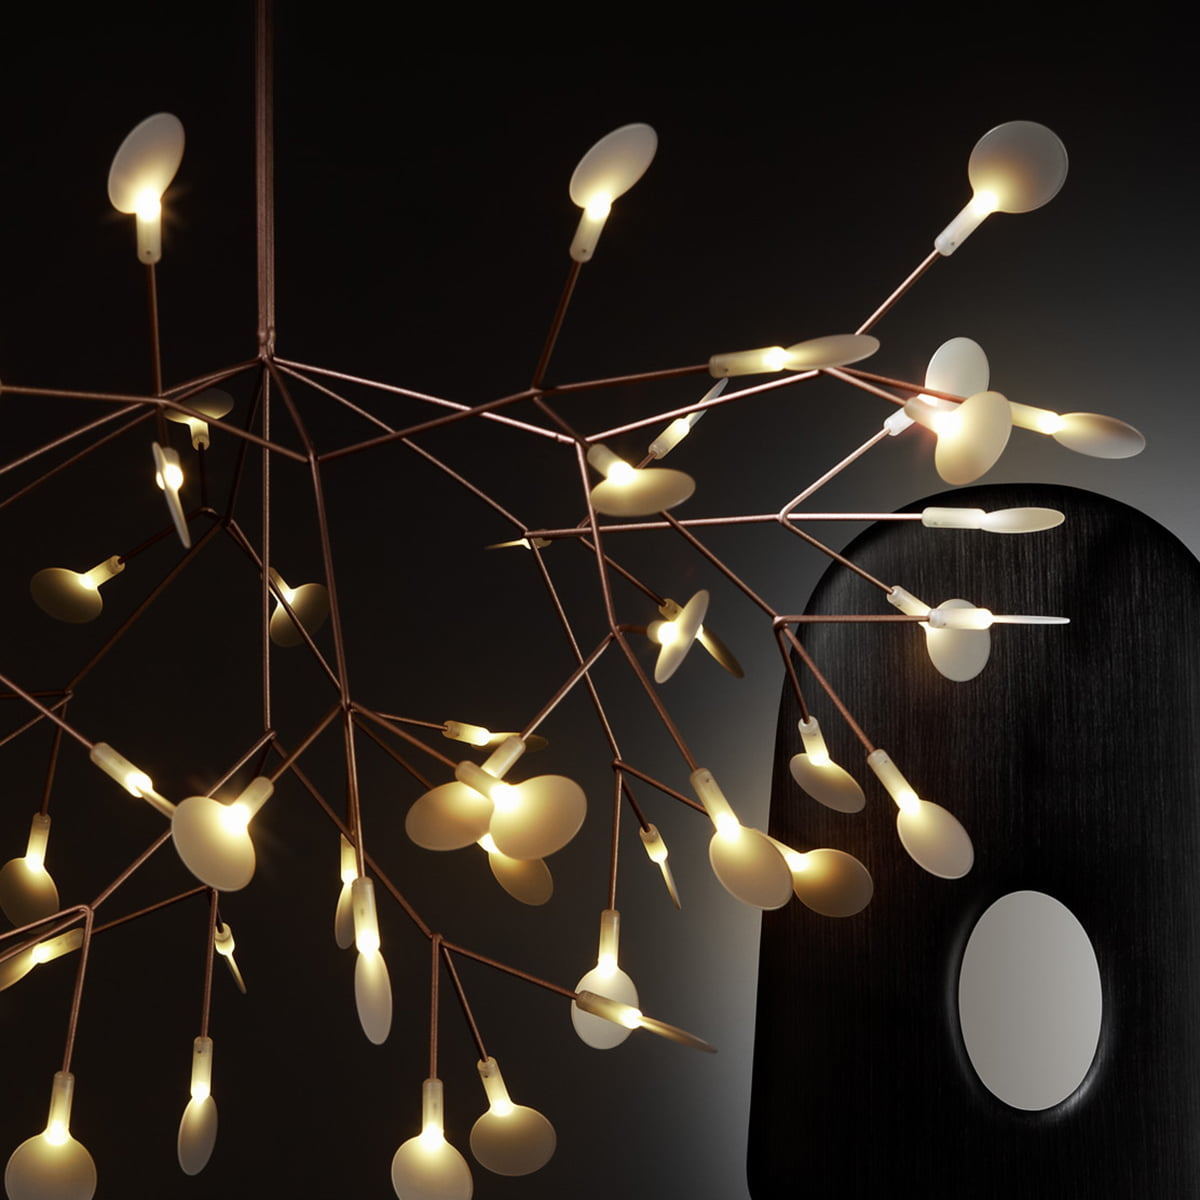 heracleum ii suspension lamp by moooi in the shop. Black Bedroom Furniture Sets. Home Design Ideas